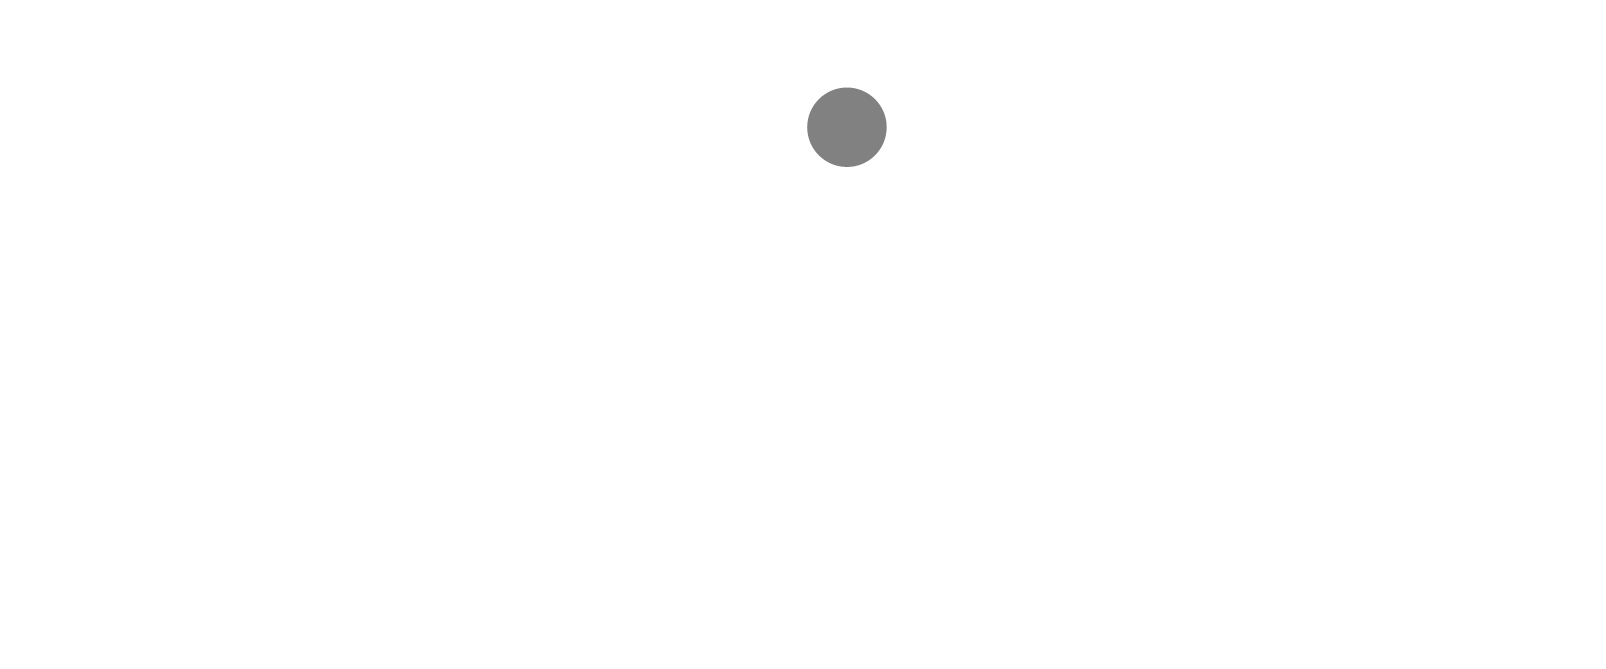 Selected Circle to highlight driver